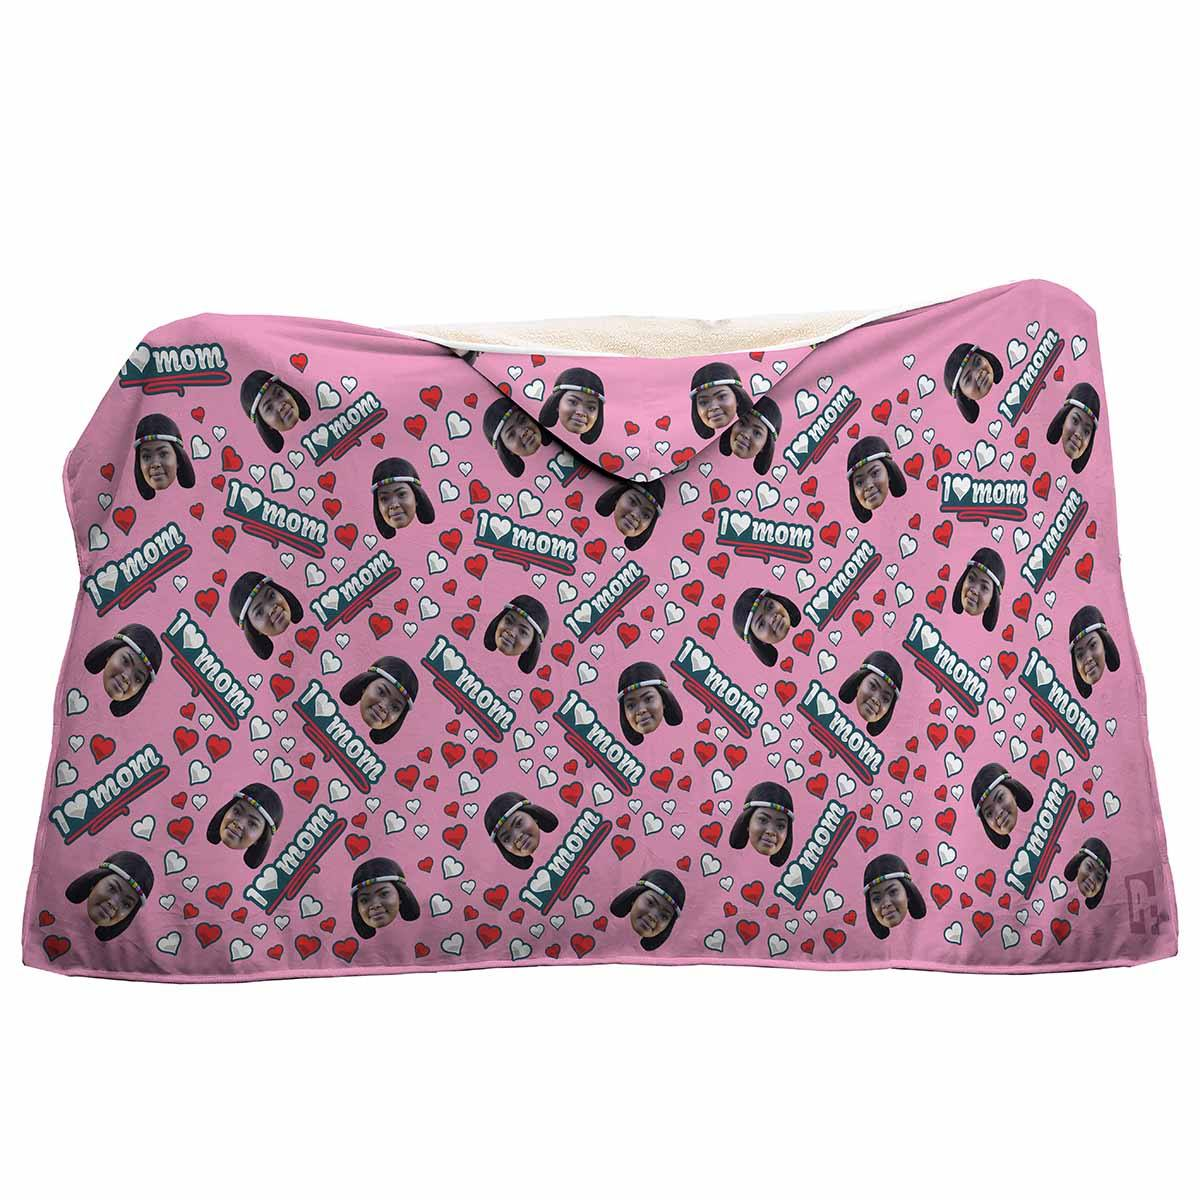 pink Love Mom hooded blanket personalized with photo of face printed on it